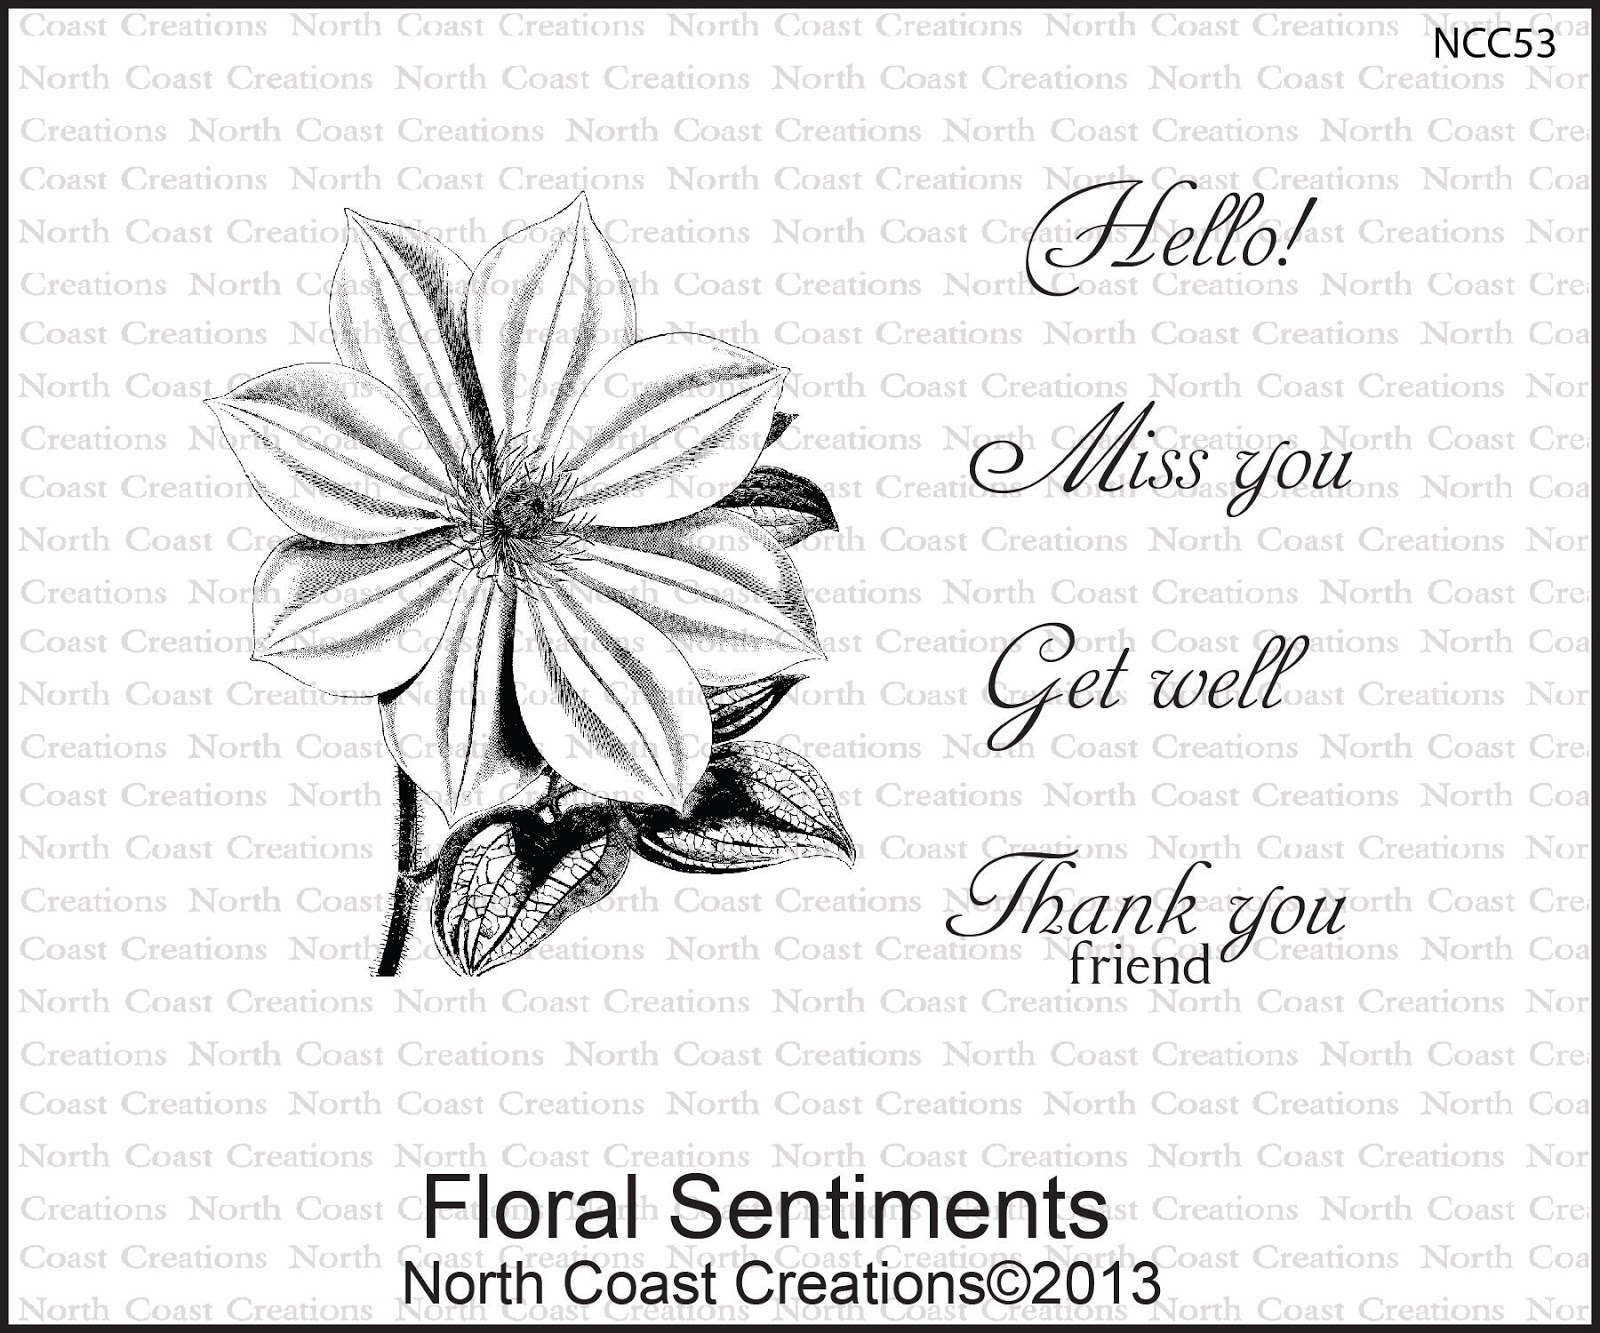 http://www.northcoastcreations.com/index.php/new-releases/ncc53-floral-sentiments.html